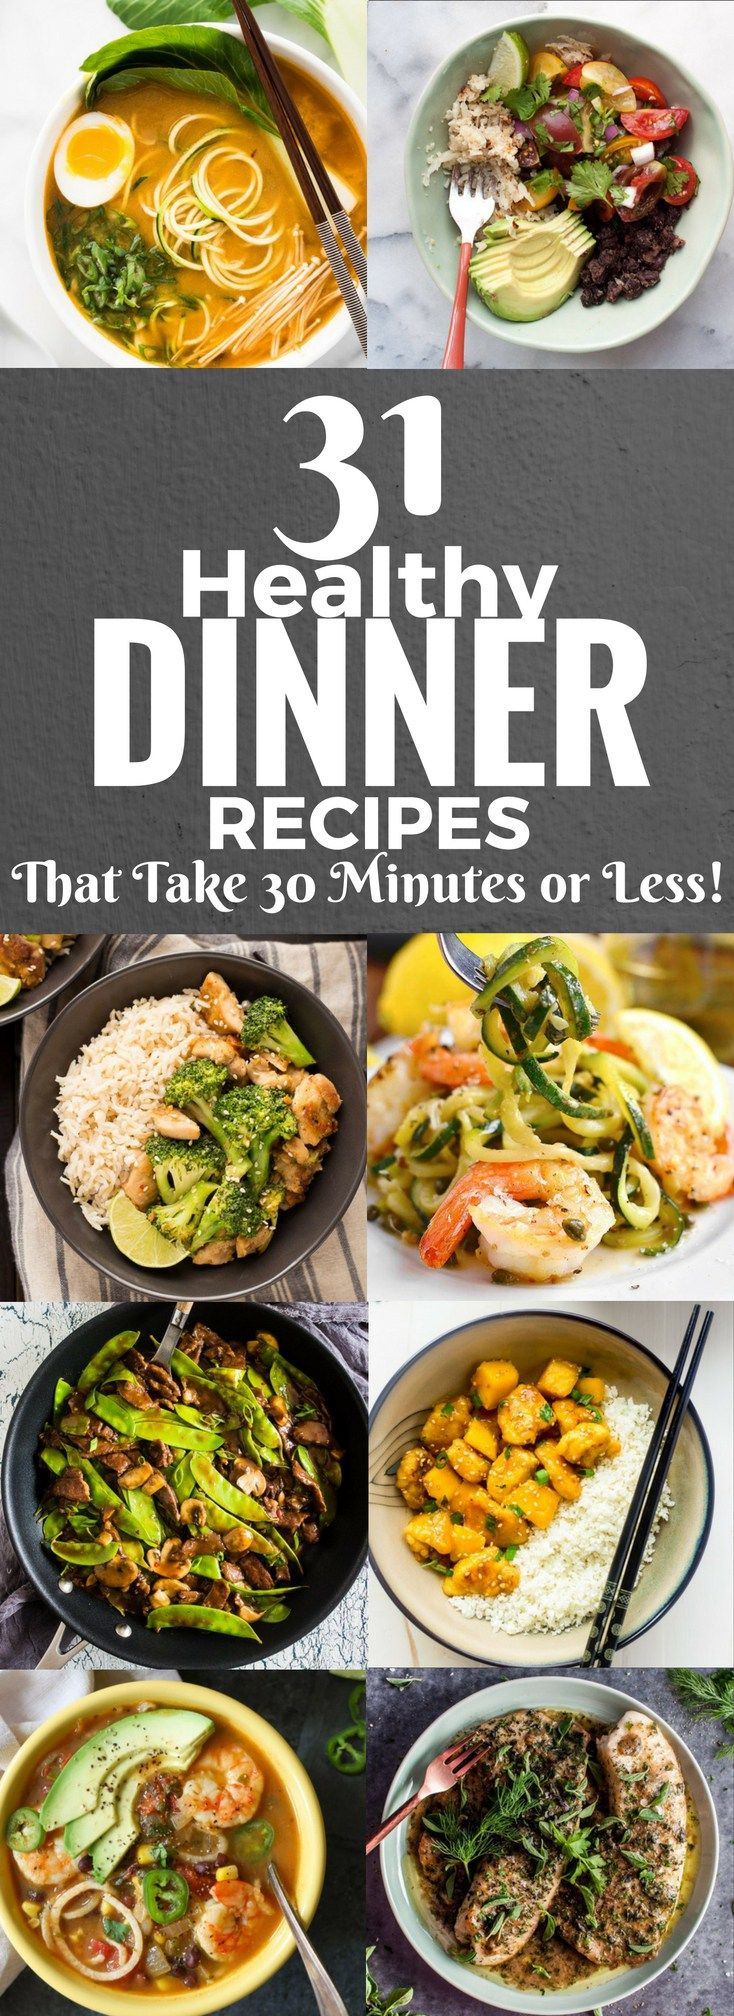 Healthy clean easy recipes